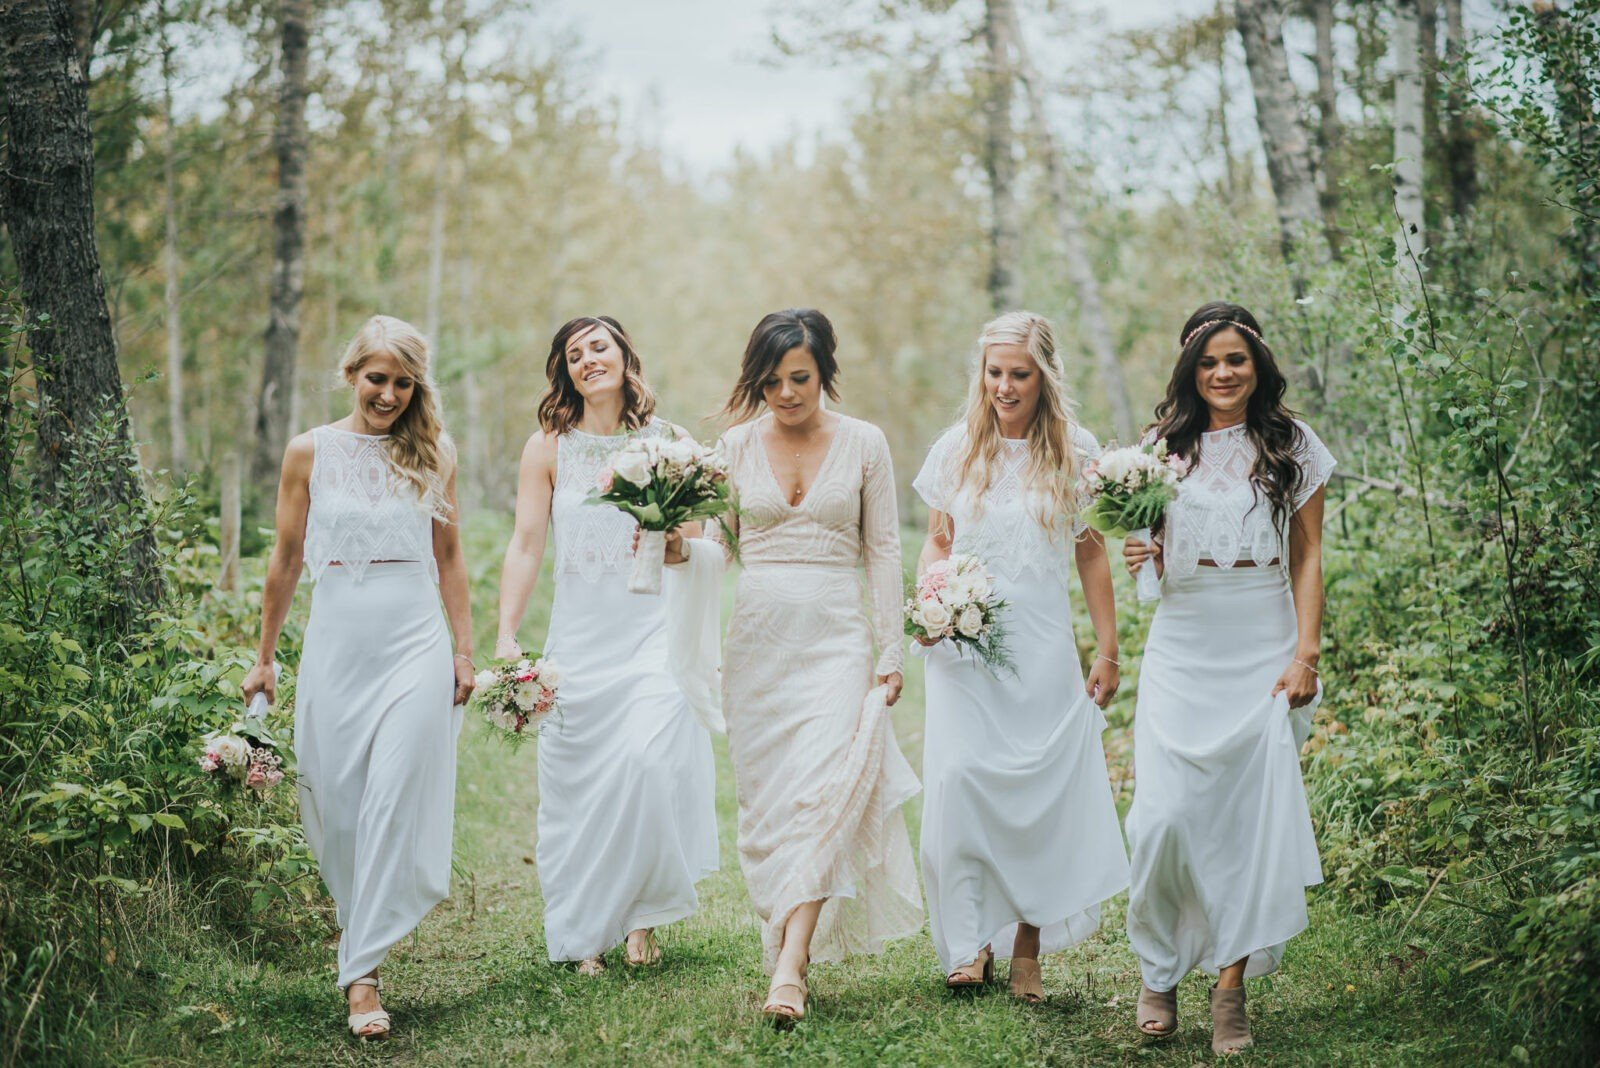 All dresses made by the mother of the bride!